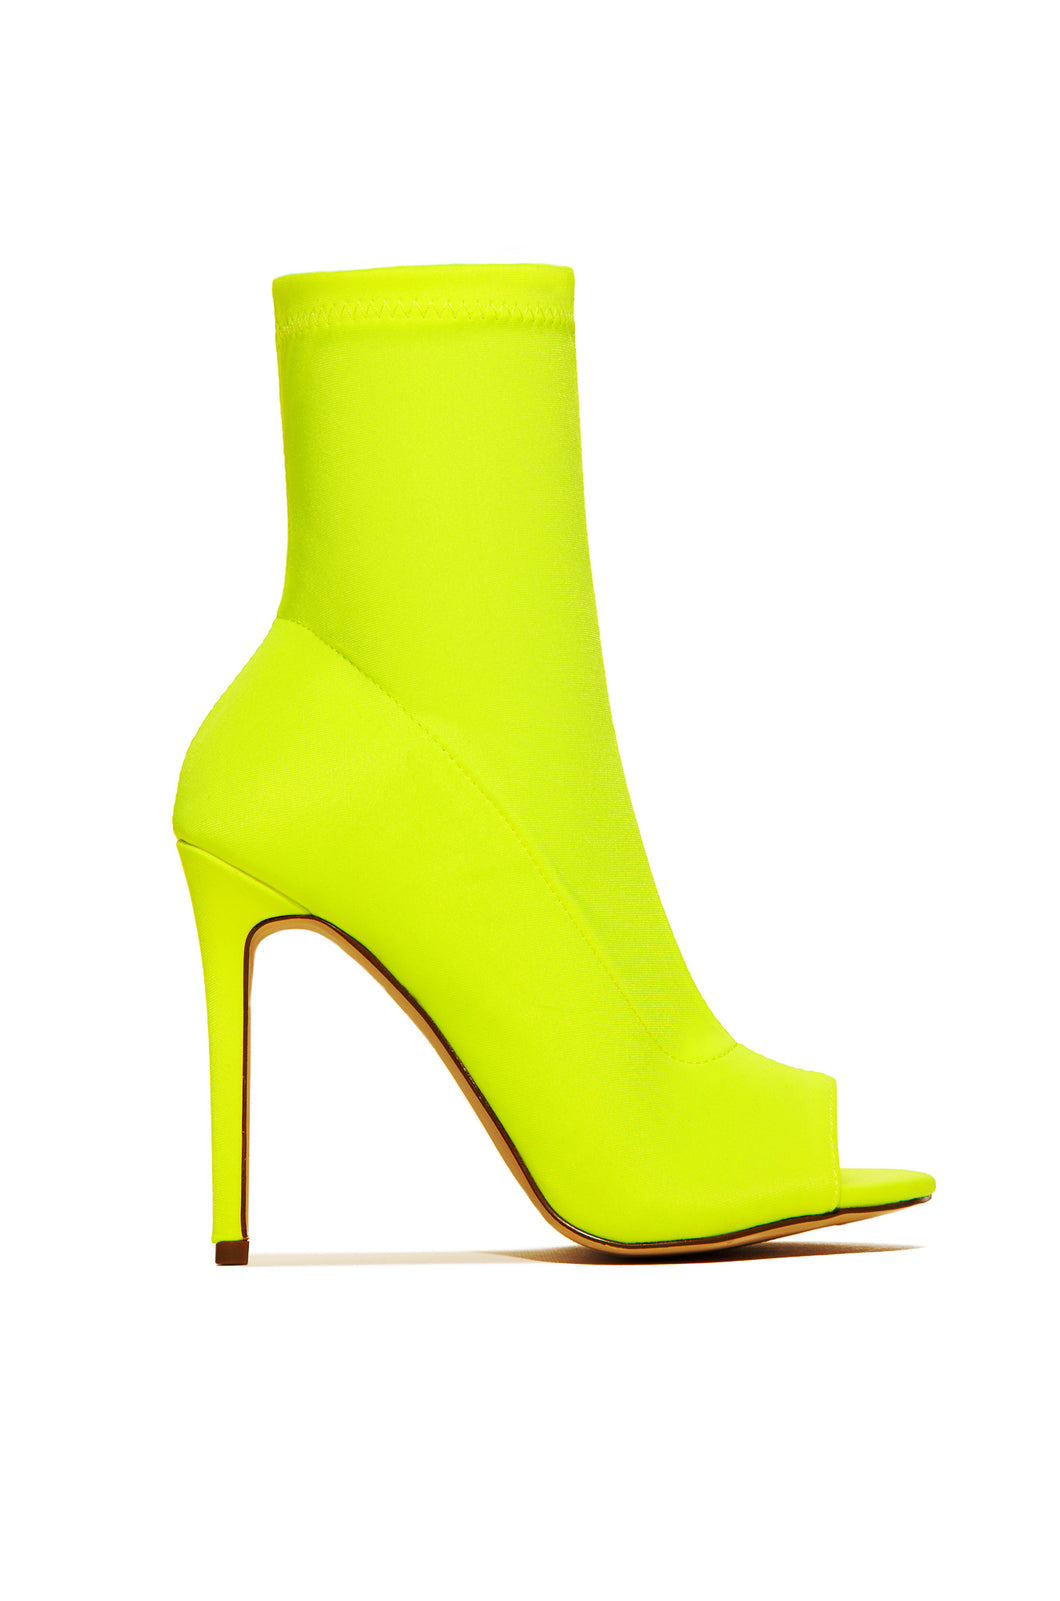 Move Over - Neon Yellow Lycra